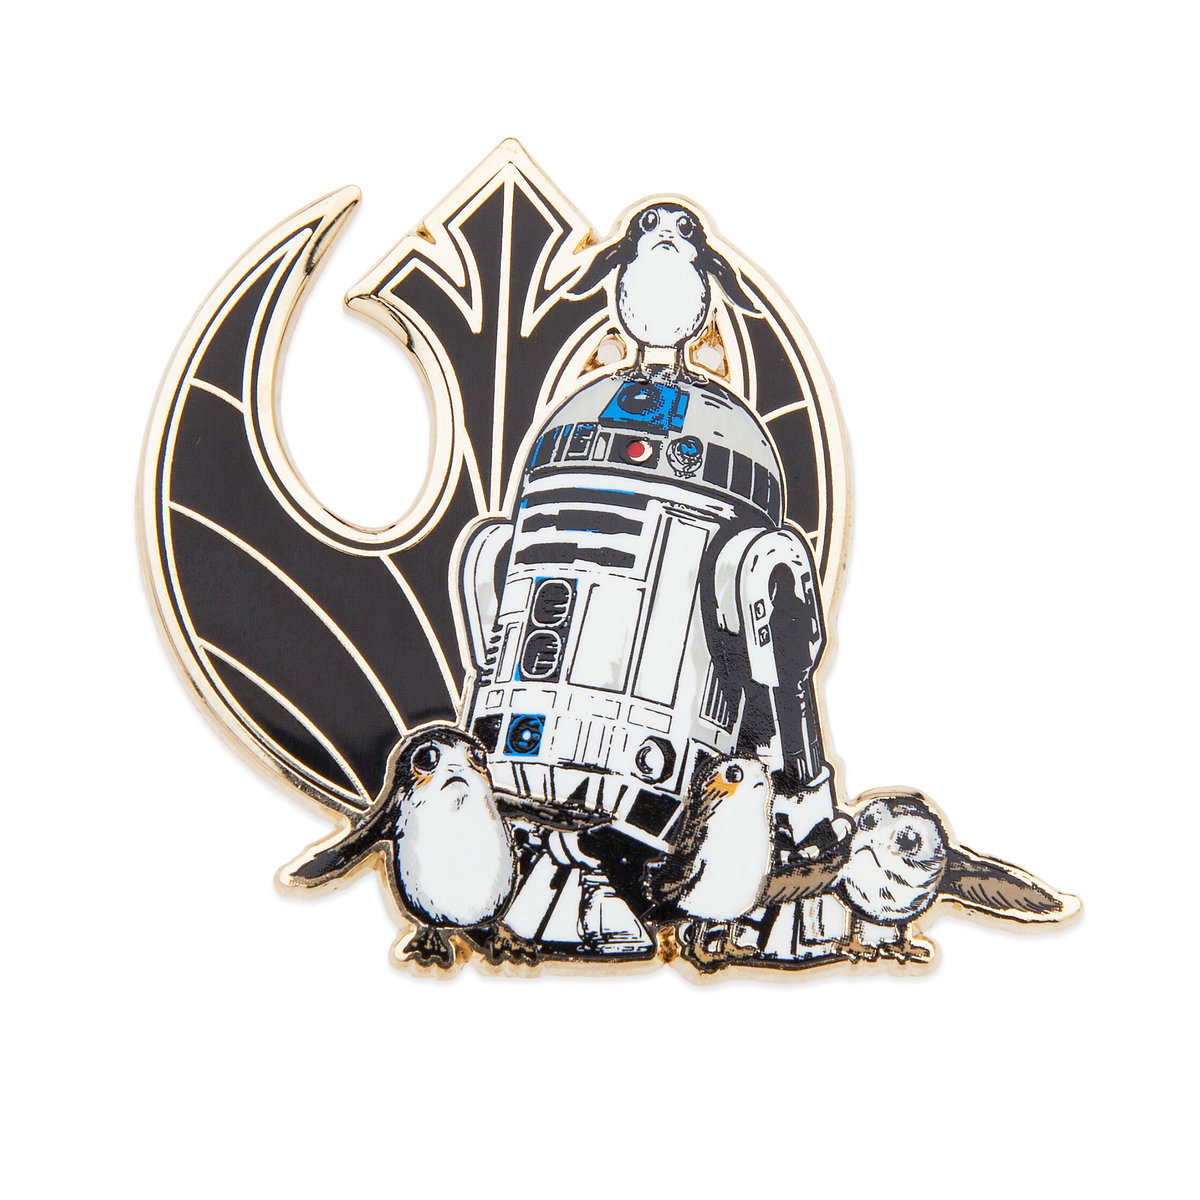 TLJ R2-D2 and Porgs Pin and Lithograph Set 2